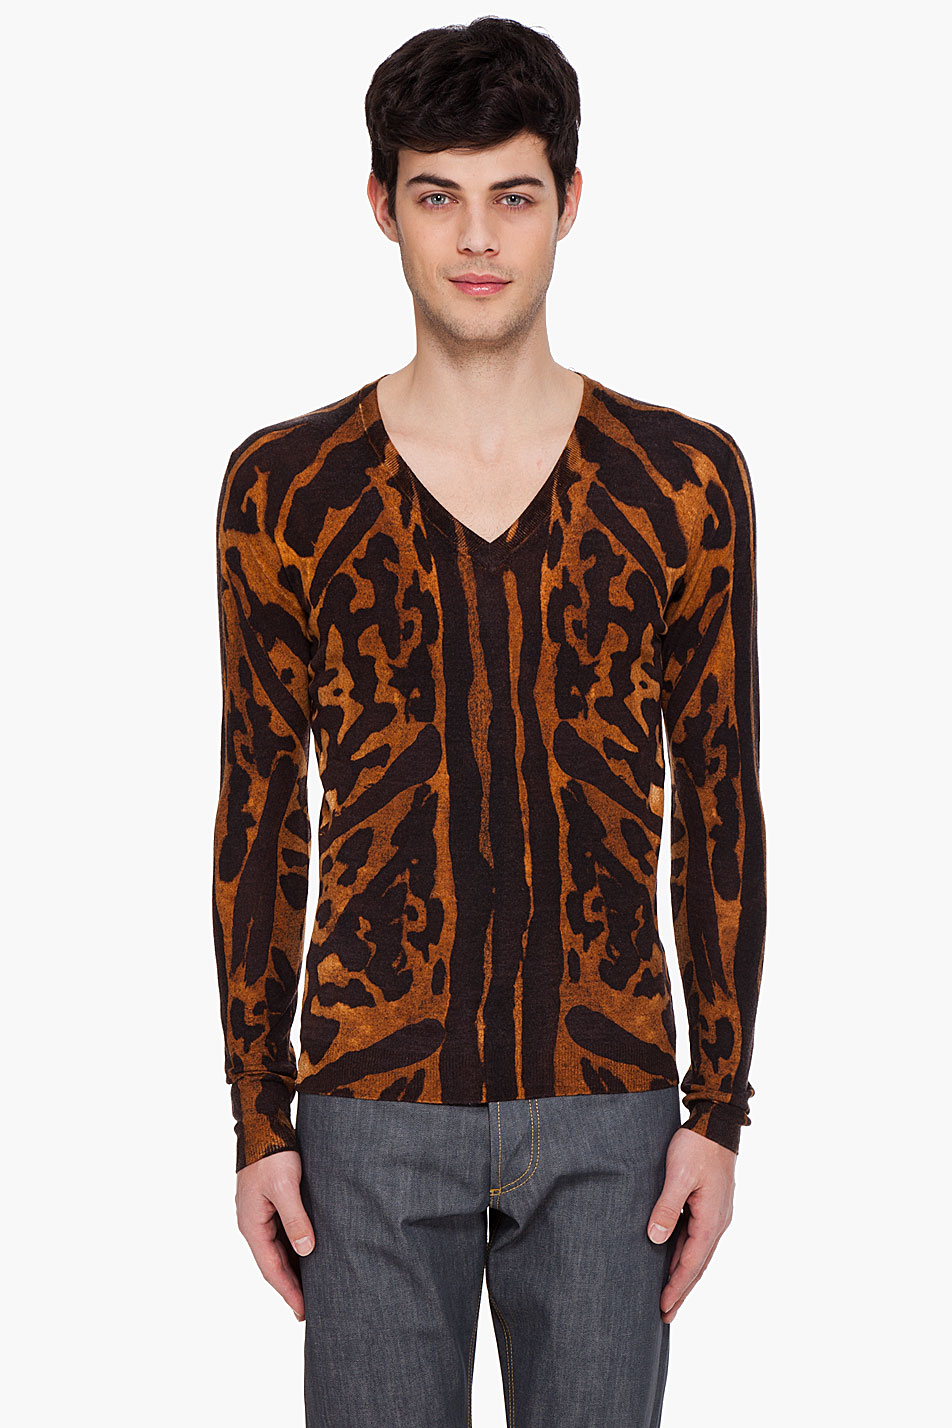 Alexander mcqueen Leopard V-neck Sweater for Men | Lyst